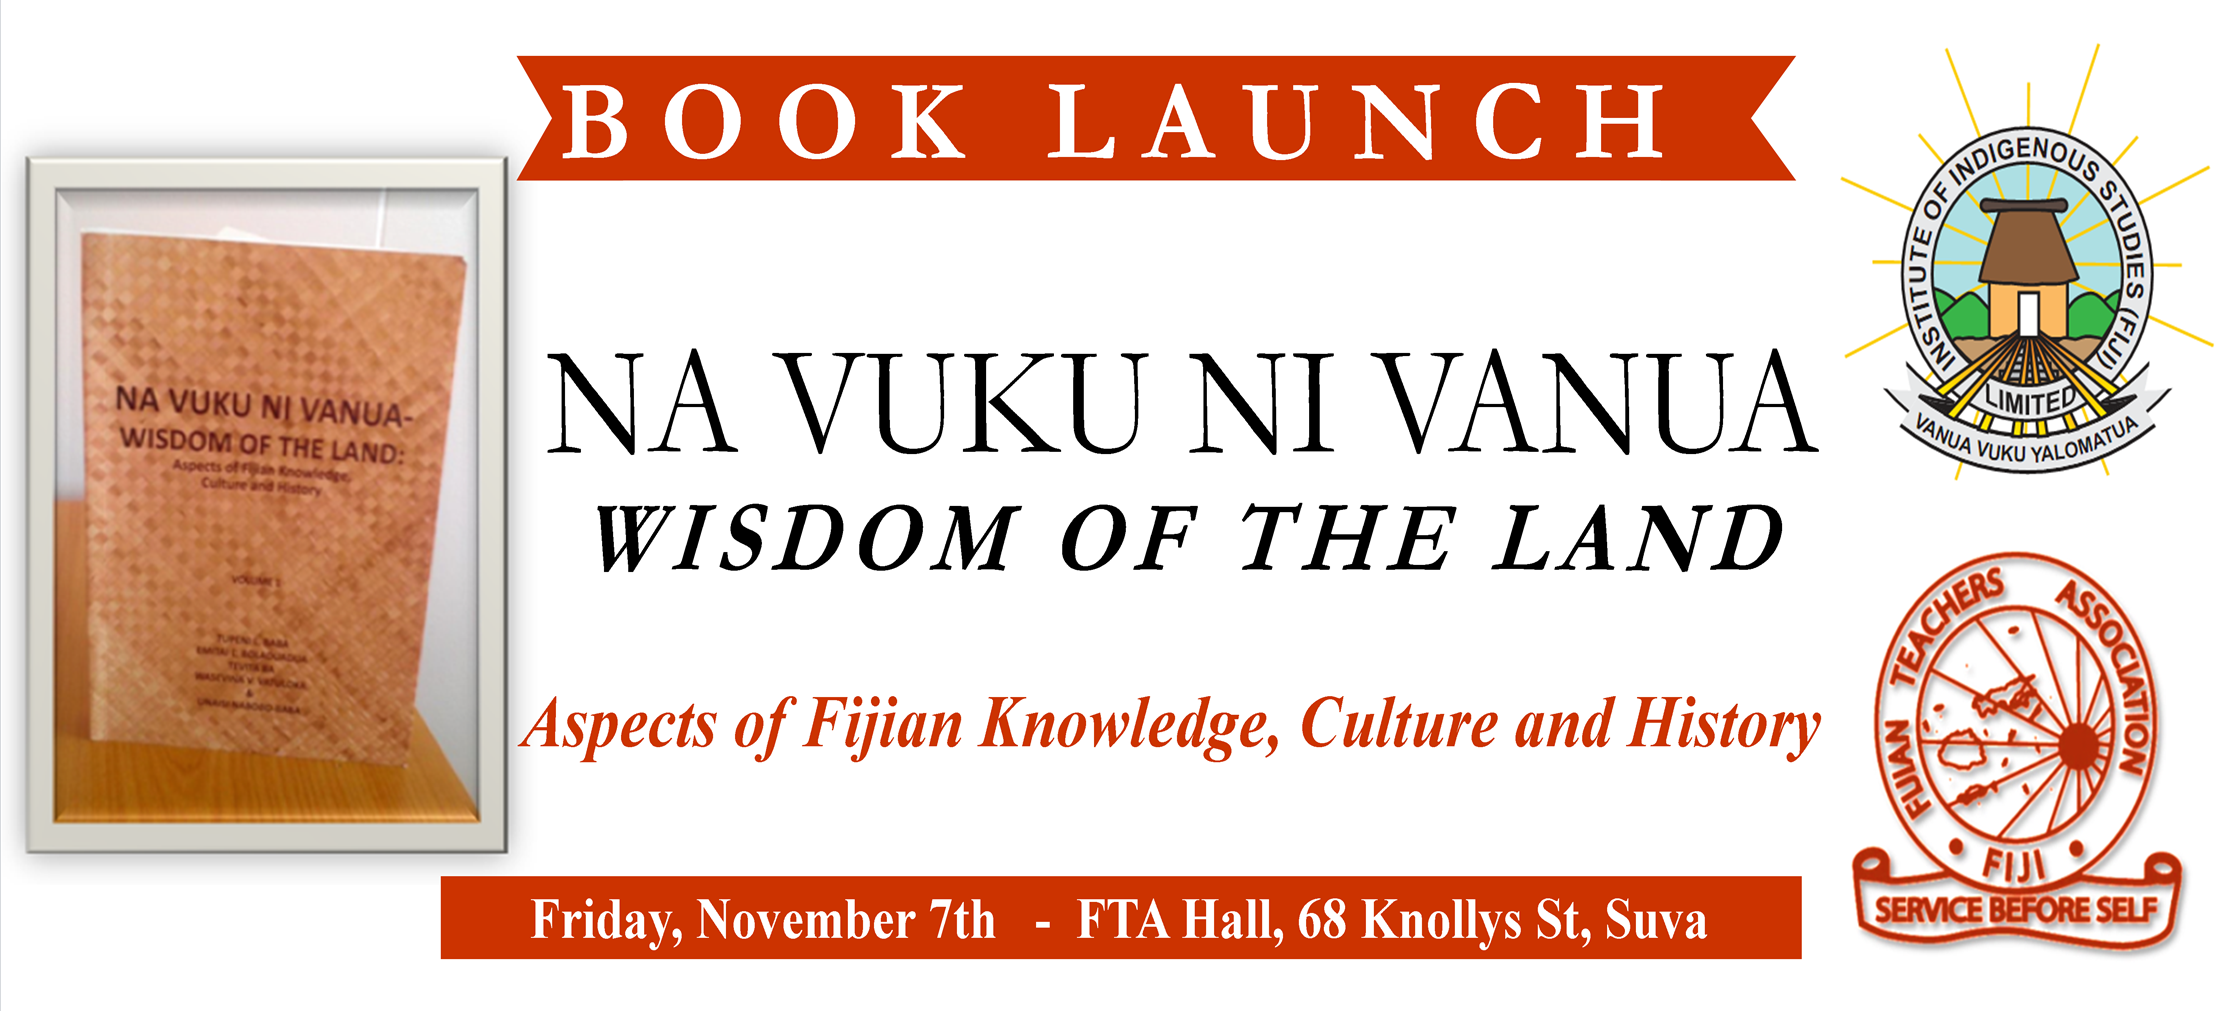 Book Launch, Friday November 7th, 68 Knollys St, Suva